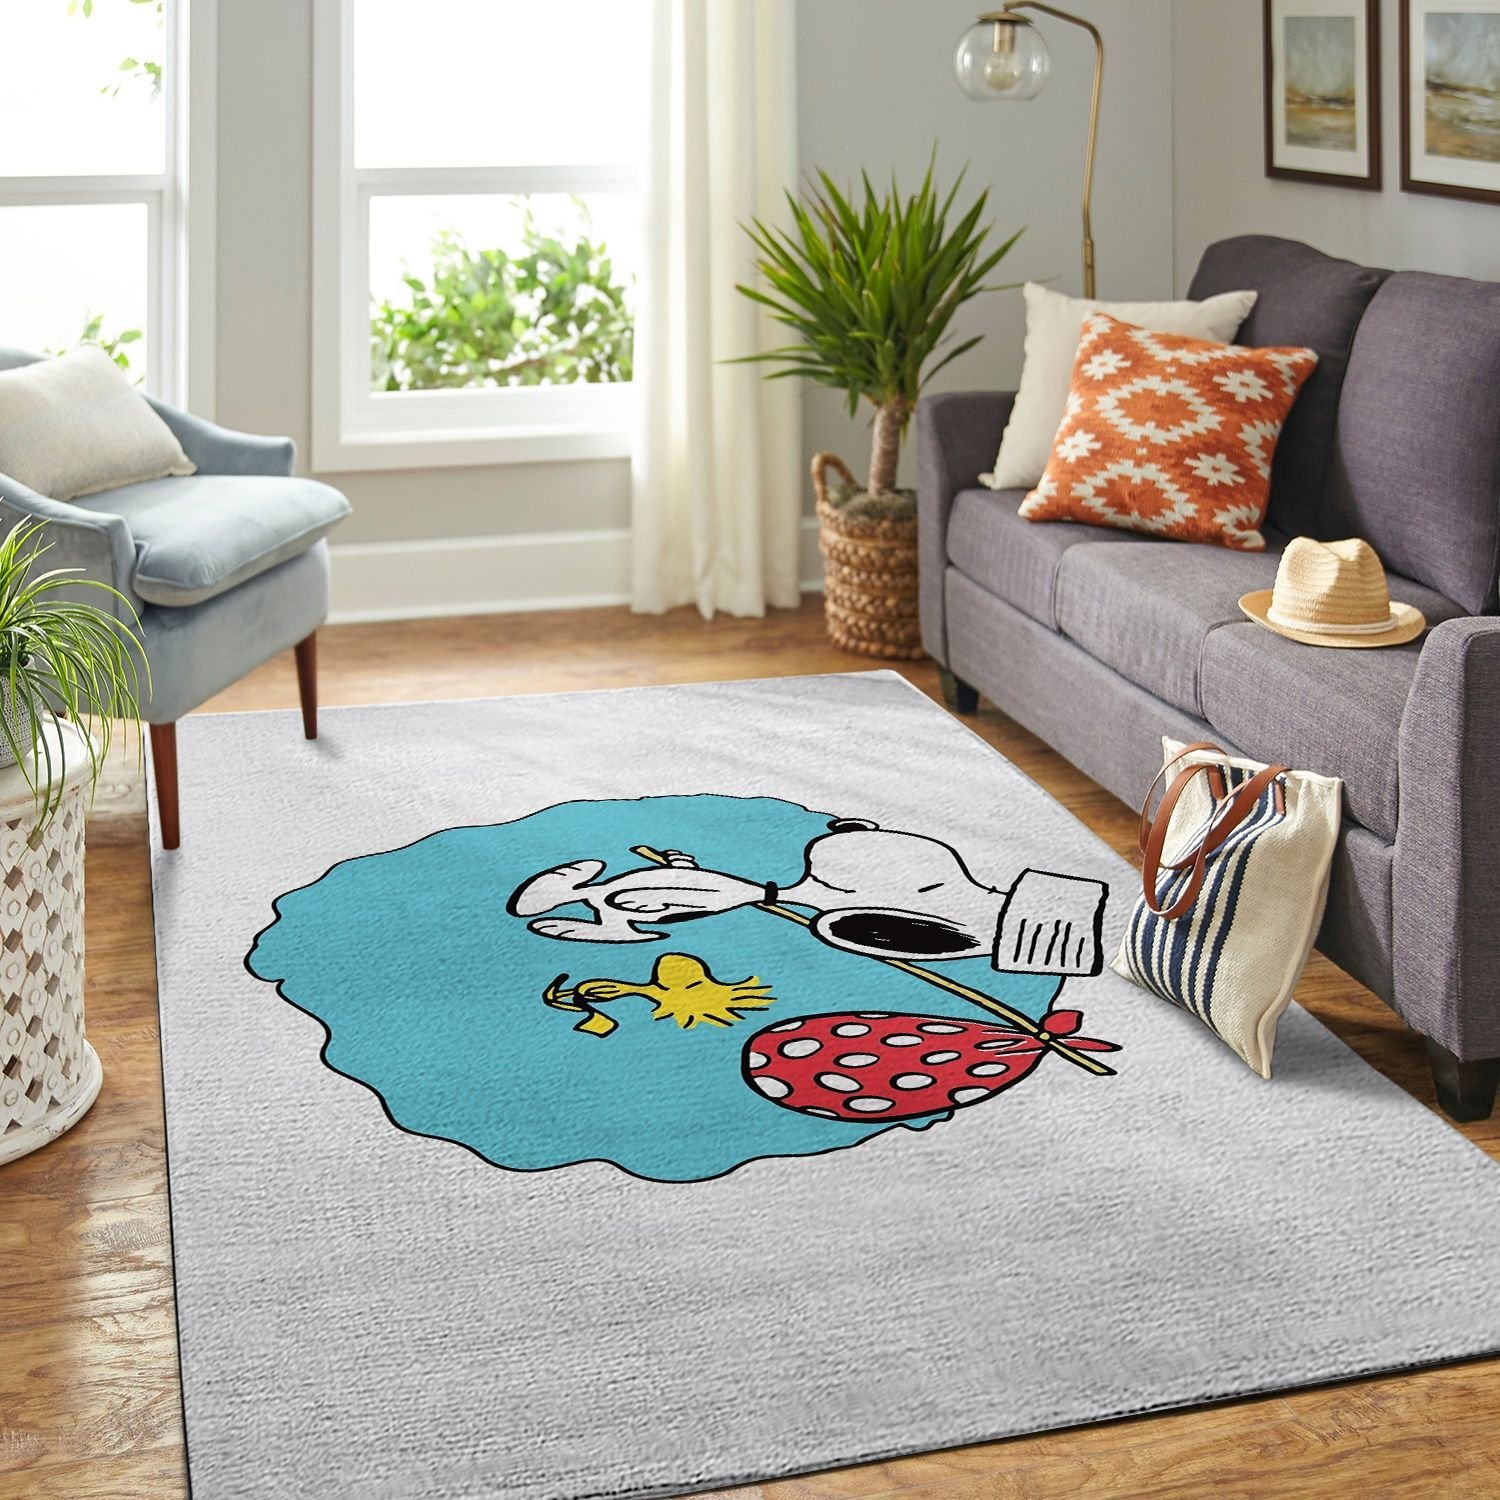 Amazon Snoopy Dog And Peanuts Comic Living Room Area No6545 Rug